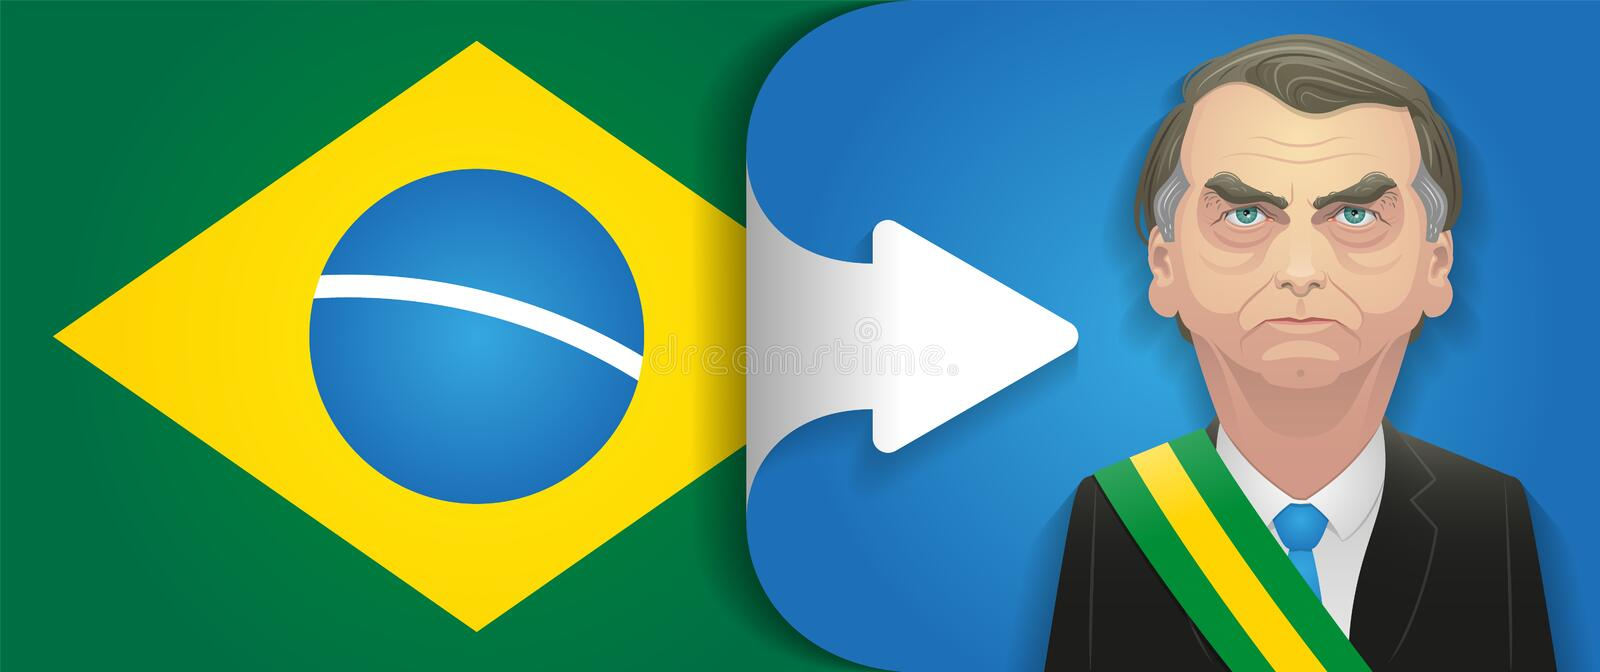 October 18, 2018 - Jair Bolsonaro caricature. Brazil turns right. Detailed vector caricature of right-wing brazilian candidate wih the presidential track